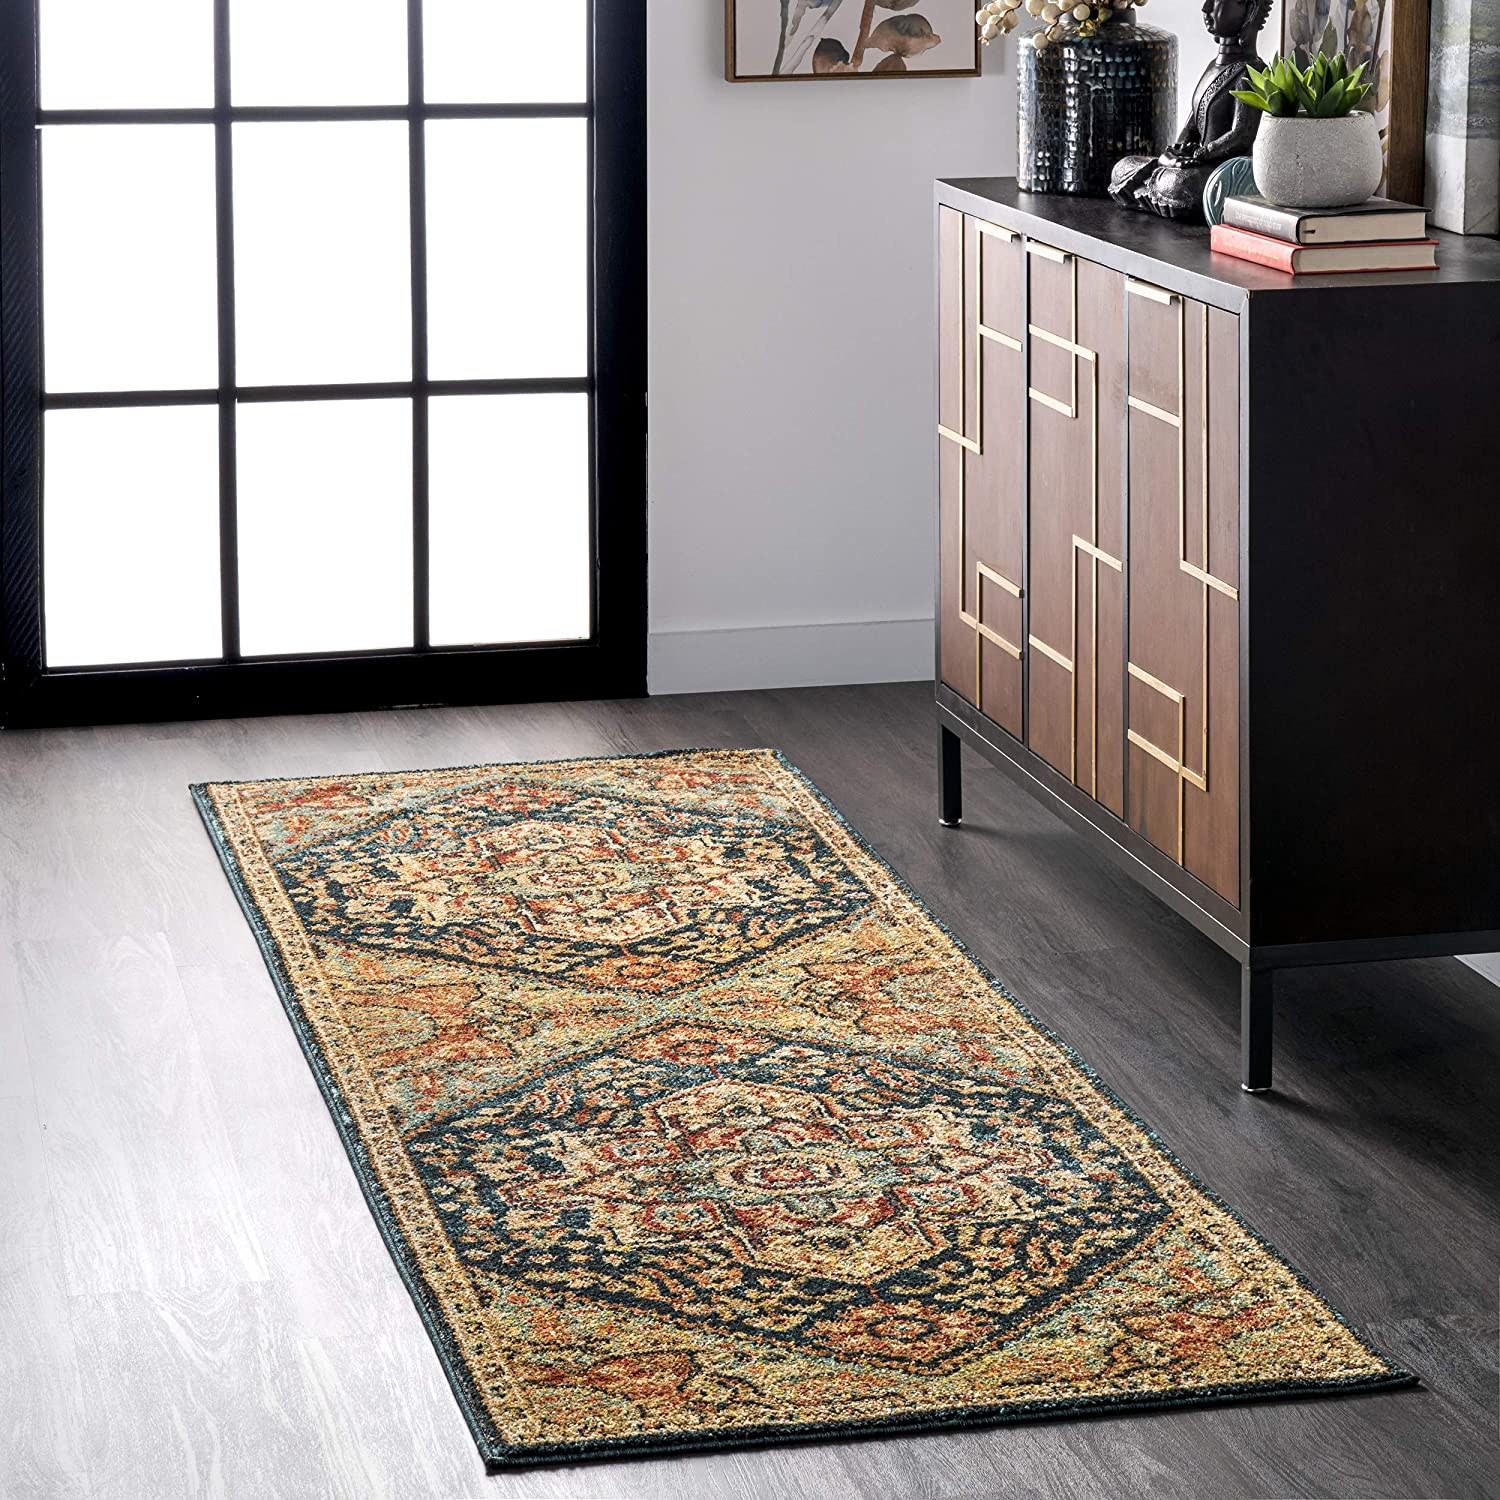 nuLOOM Tabetha OFFicial site Our shop OFFers the best service Tribal Medallion Runner Rug x Green 8' 8